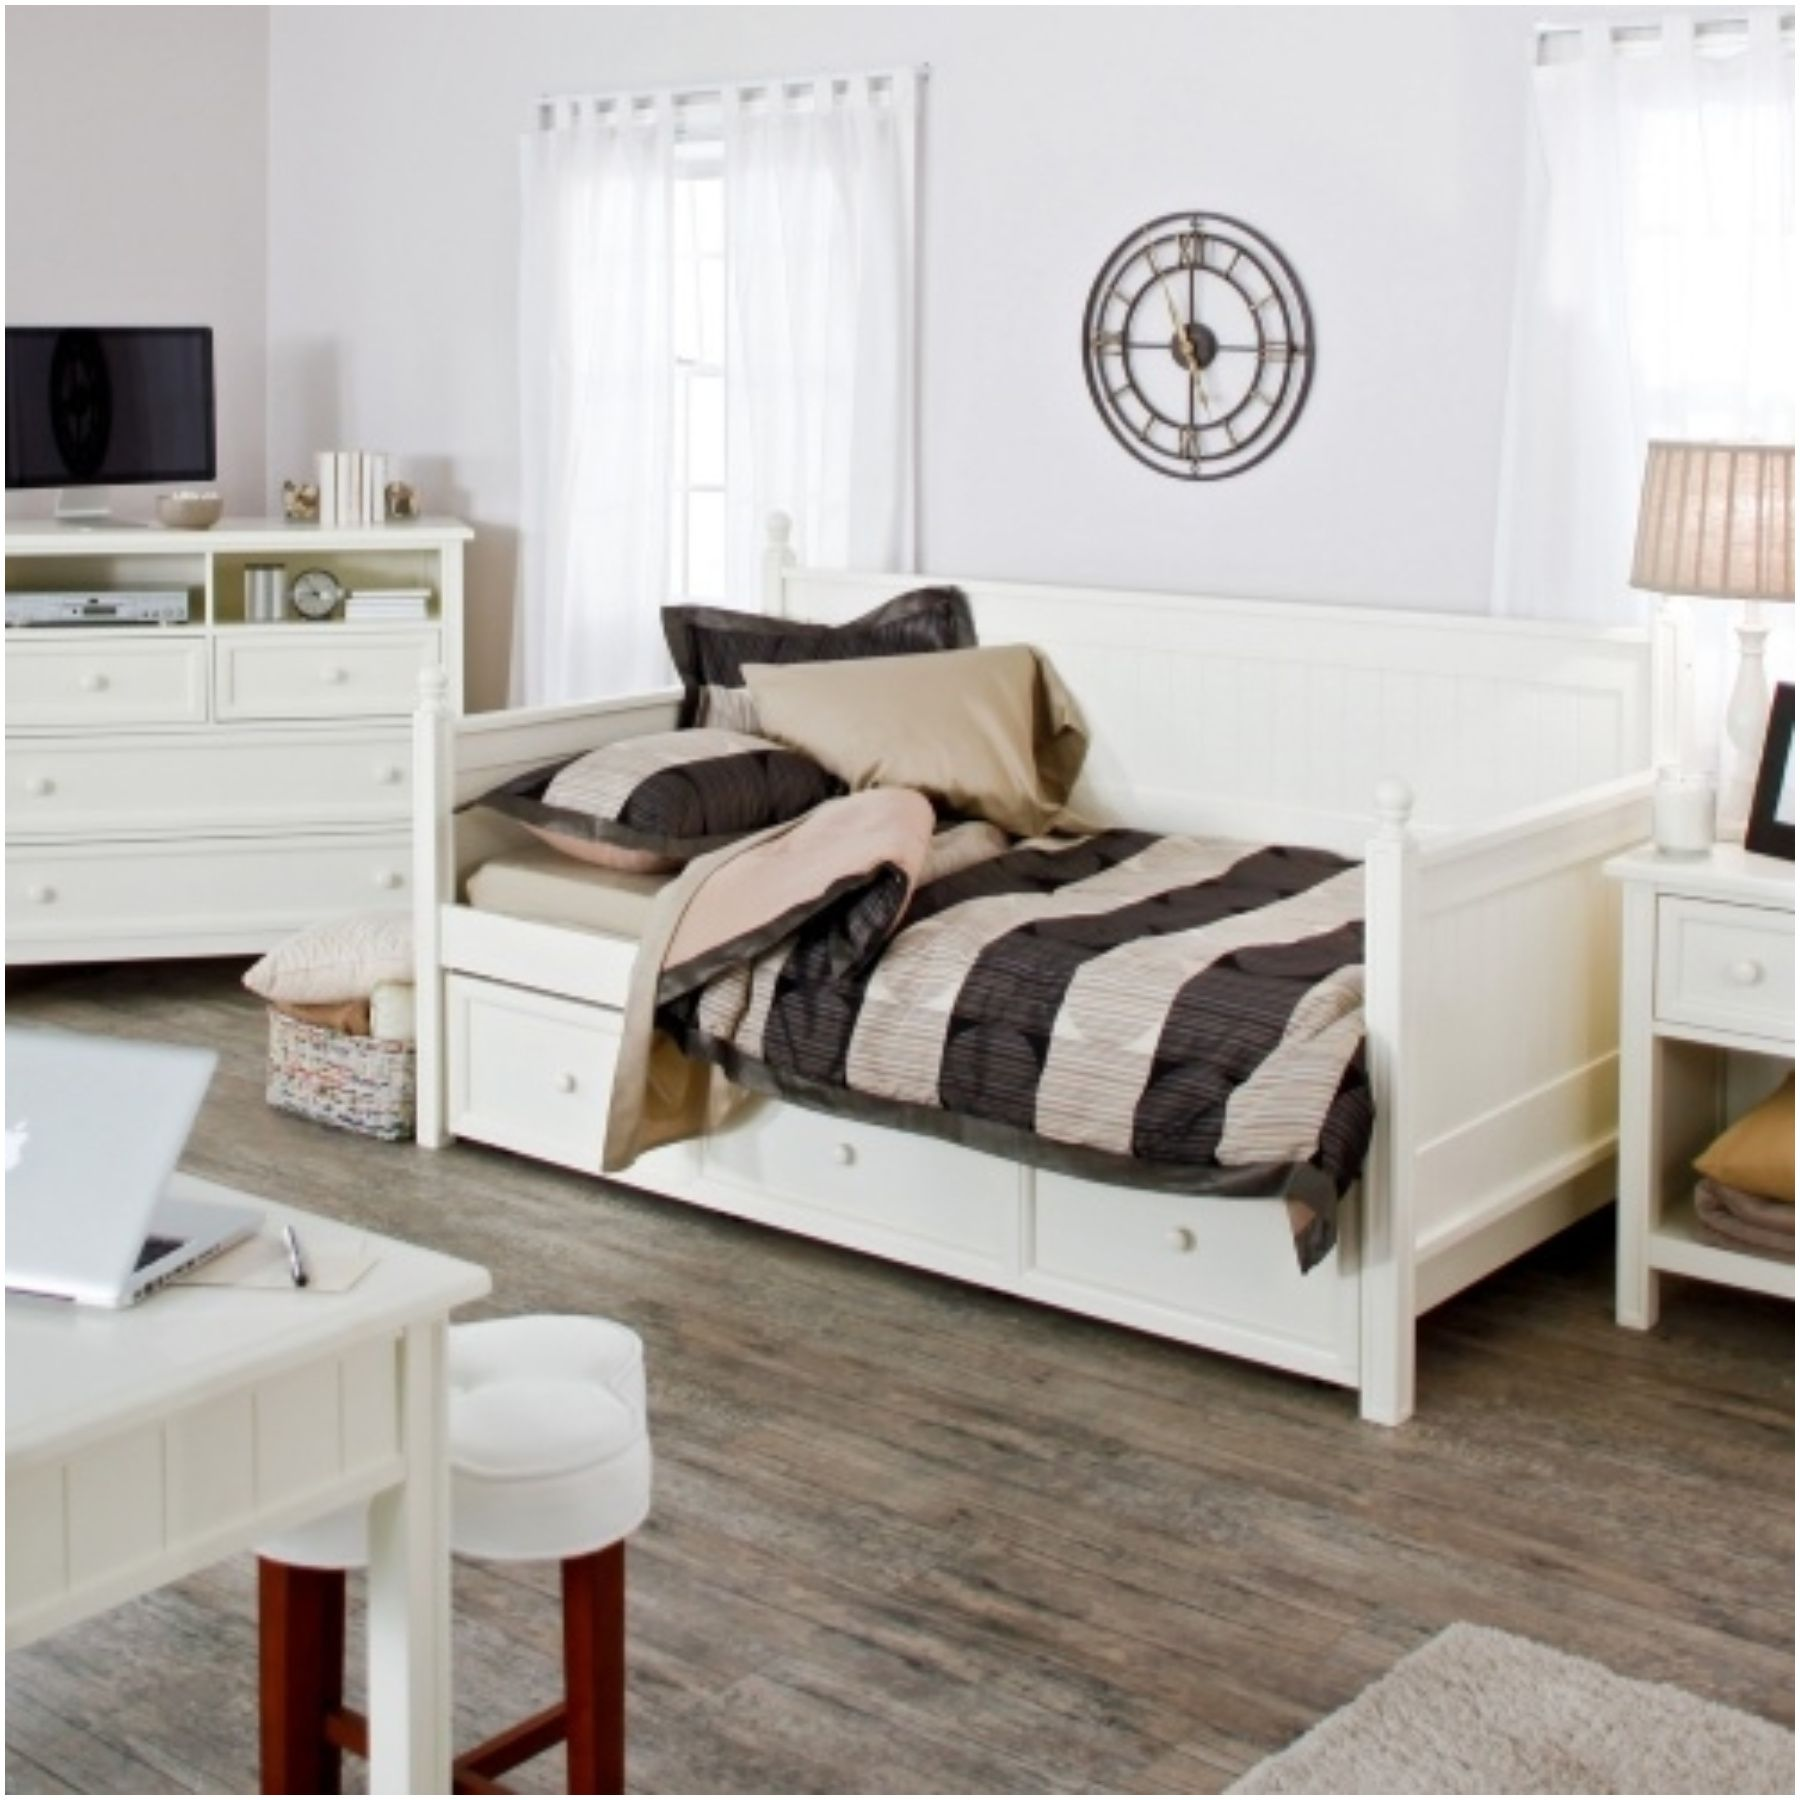 decoration dresser of daybeds furniture beautiful home drawers with modern shelves nightstand room bedroom storage full teennick and ideas for design white kids daybed